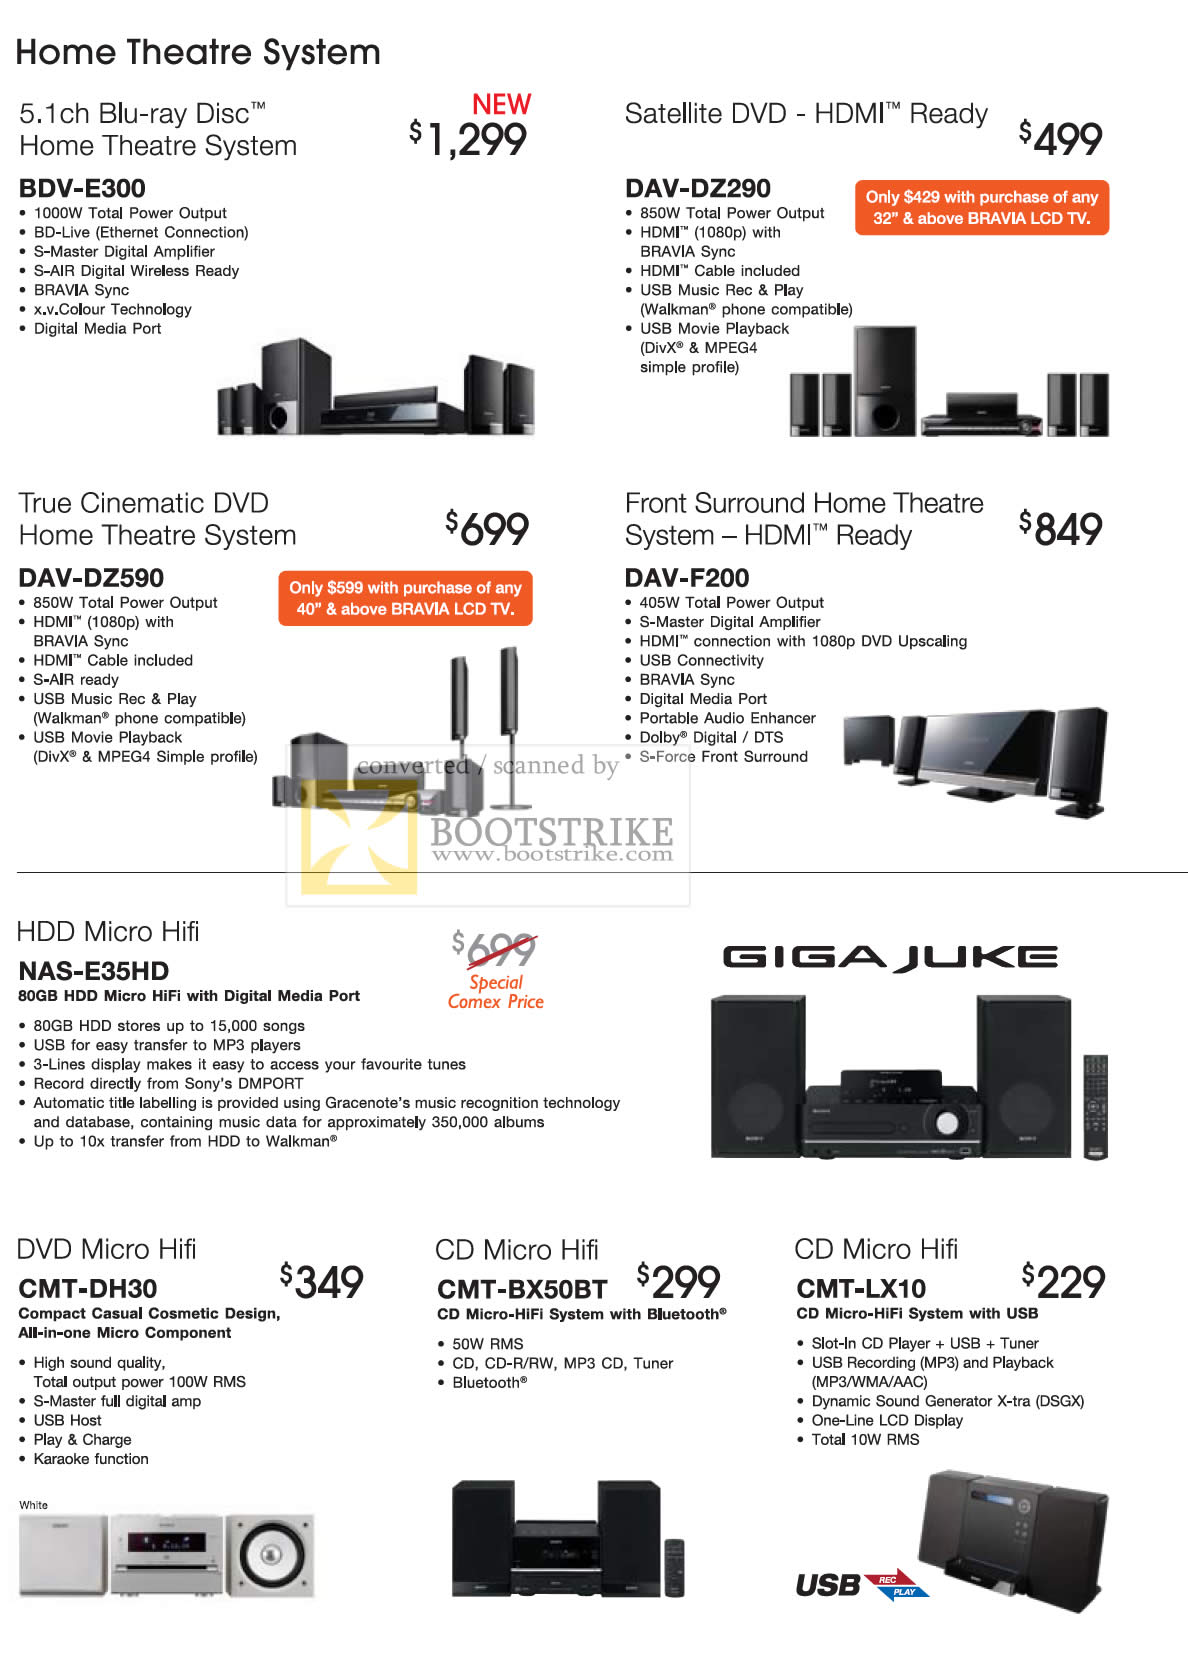 Comex 2009 price list image brochure of Sony Home Theatre Blu-ray BDV DAV Micro Hifi NAS DVD CMT CD